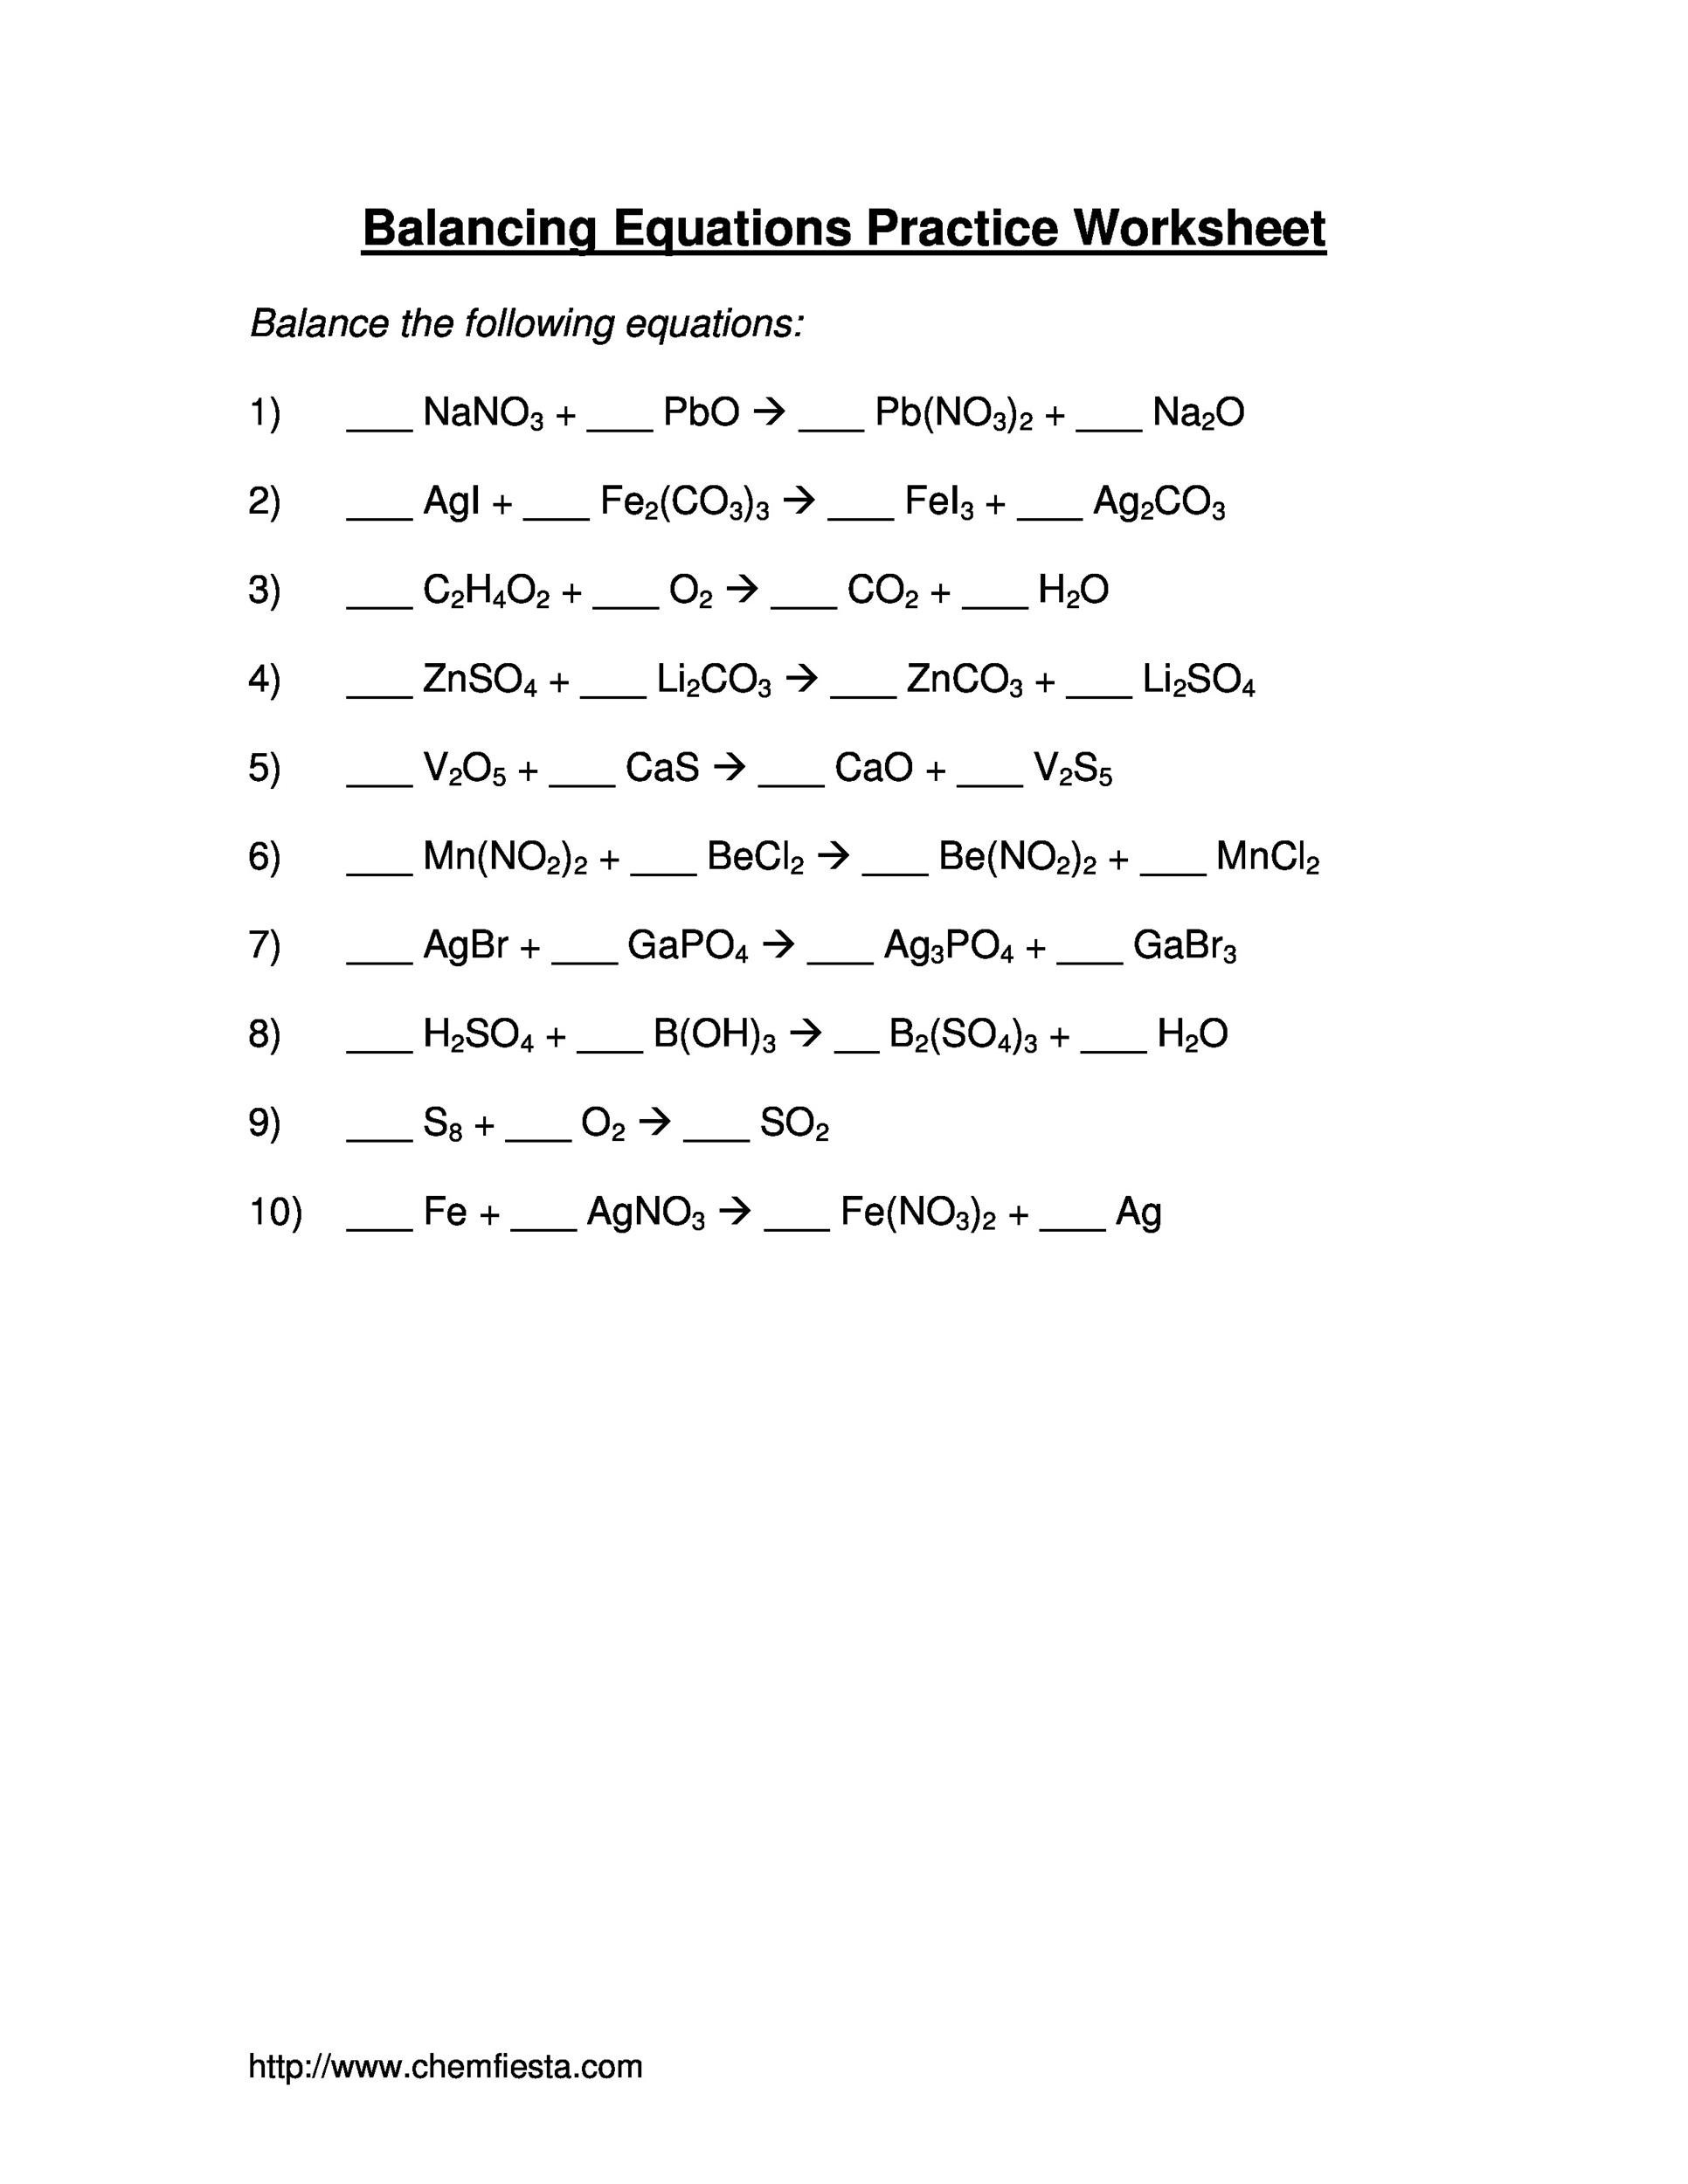 Balancing Chemical Equations Worksheet Level 2